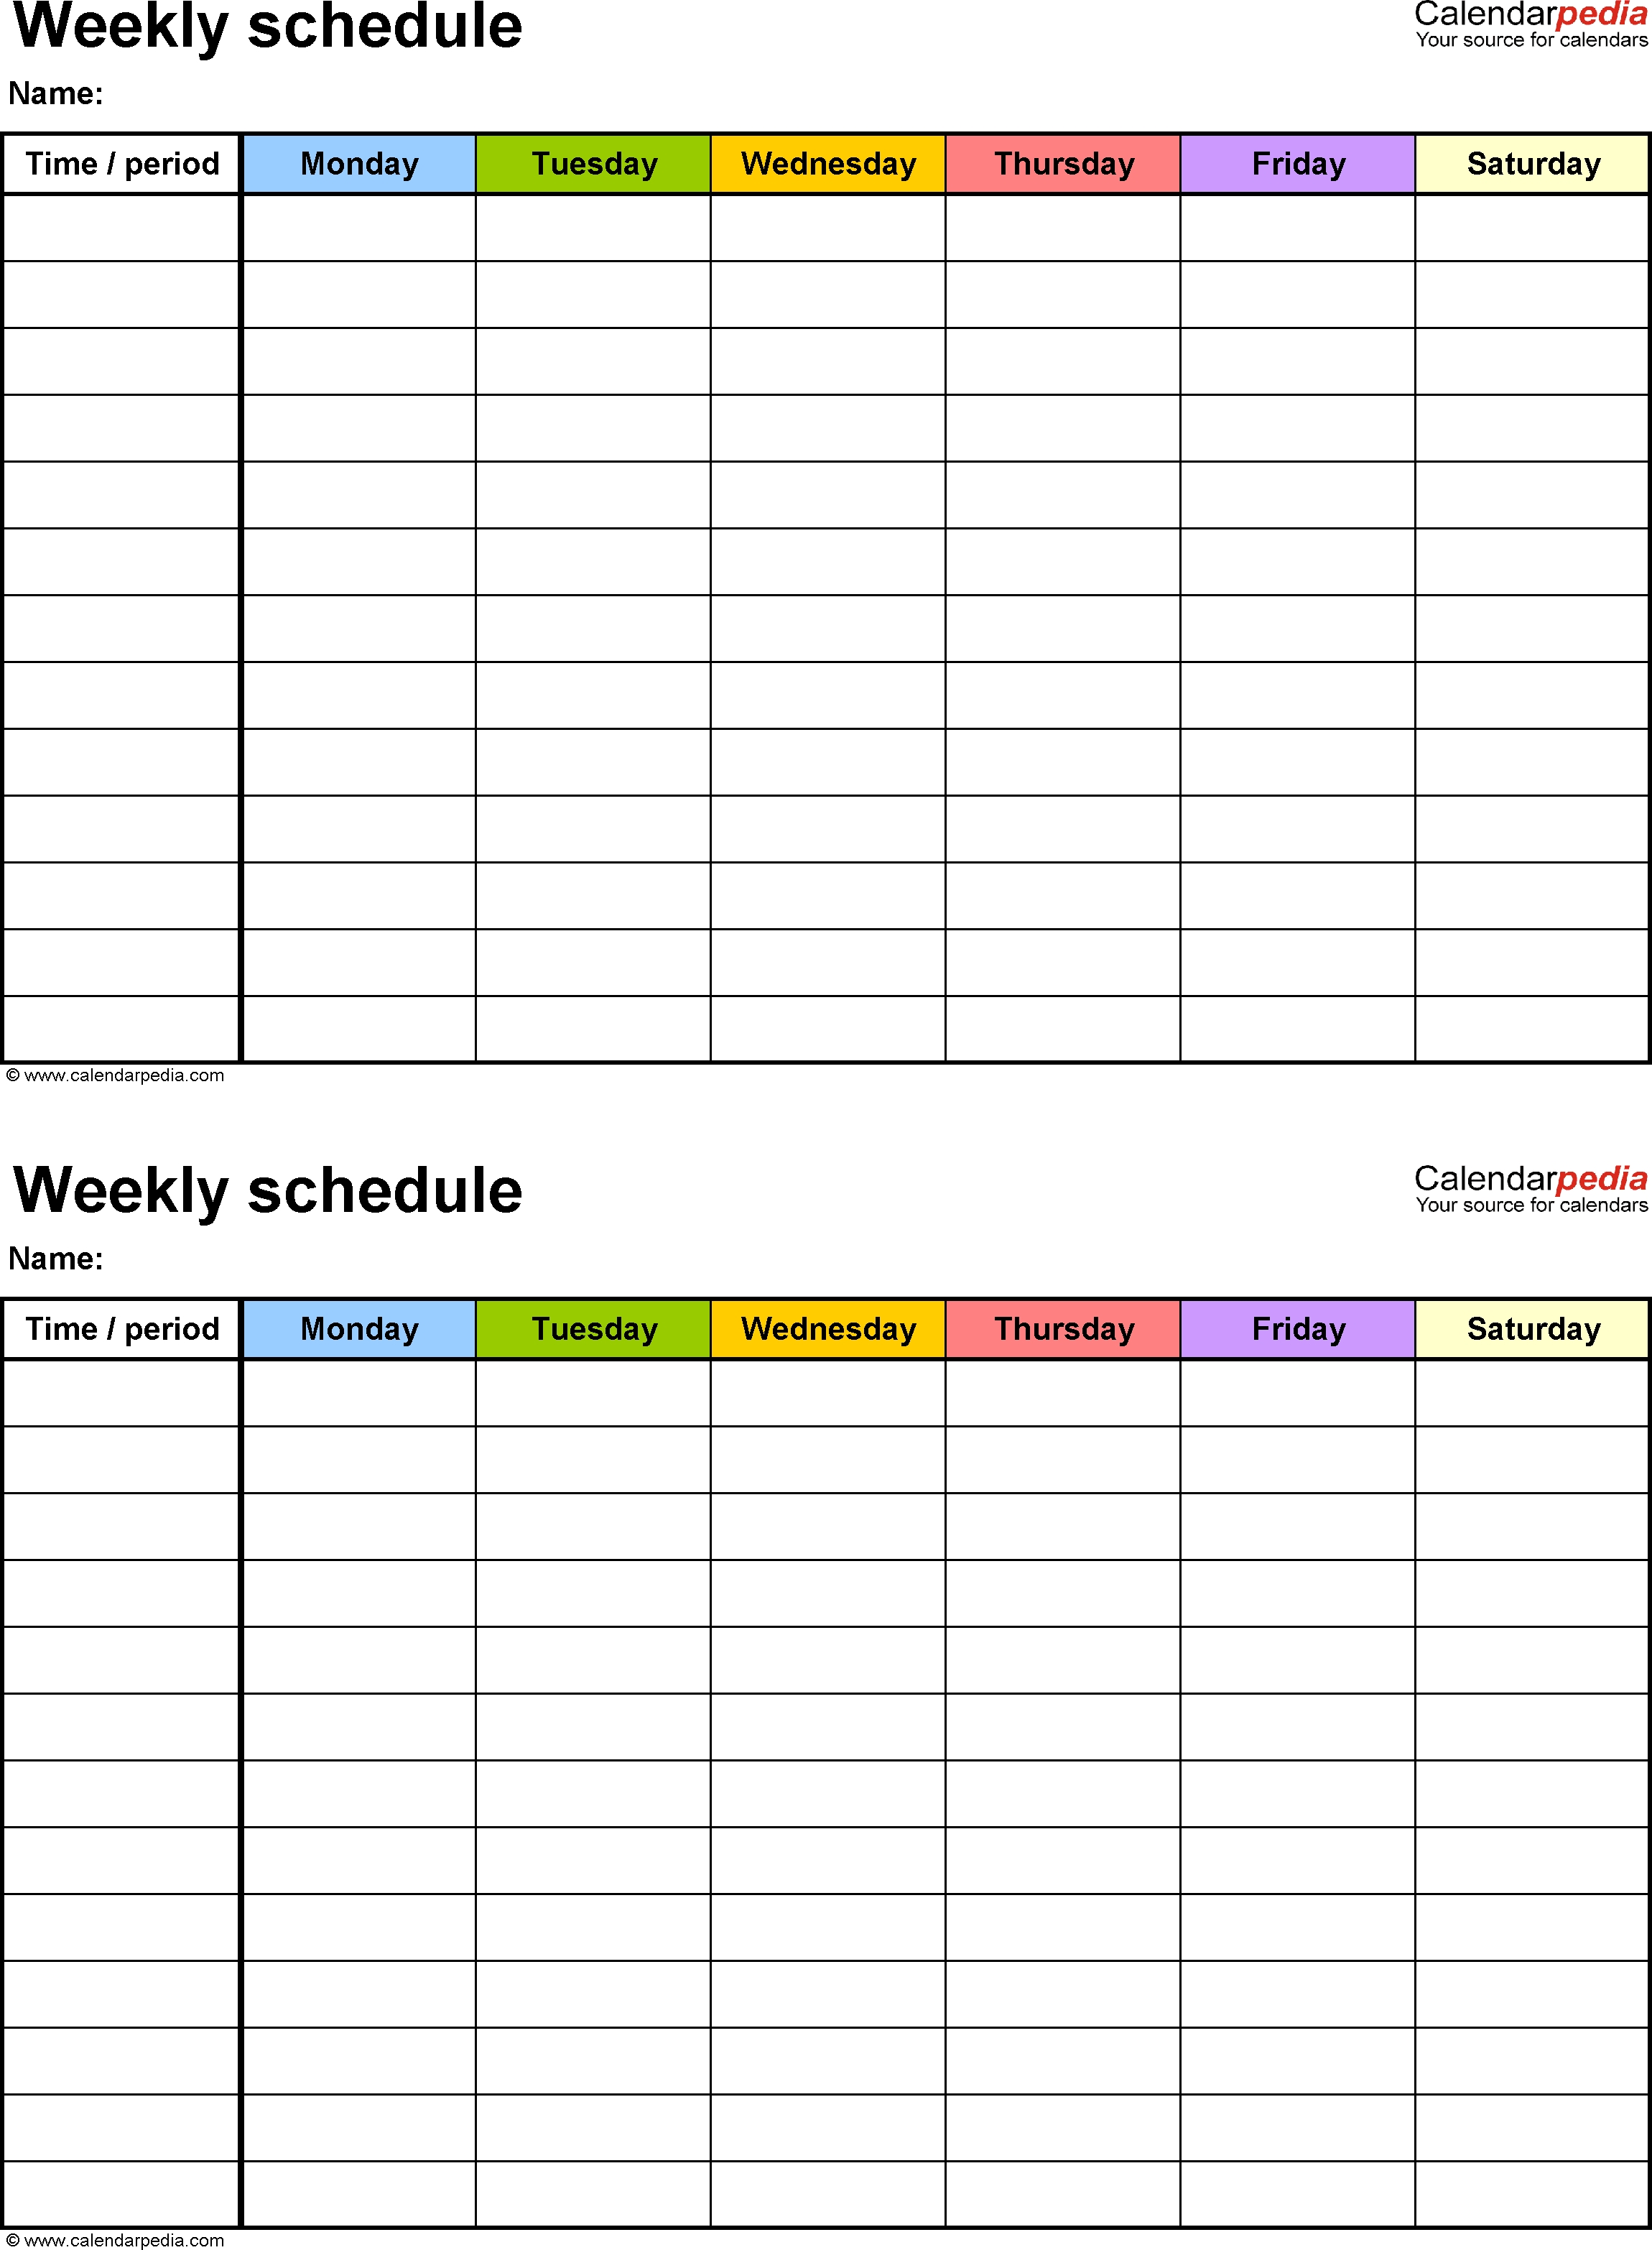 Pinpicshy Photoshop Resource On Template | Weekly Schedule intended for Monday Through Friday Calendar With Times